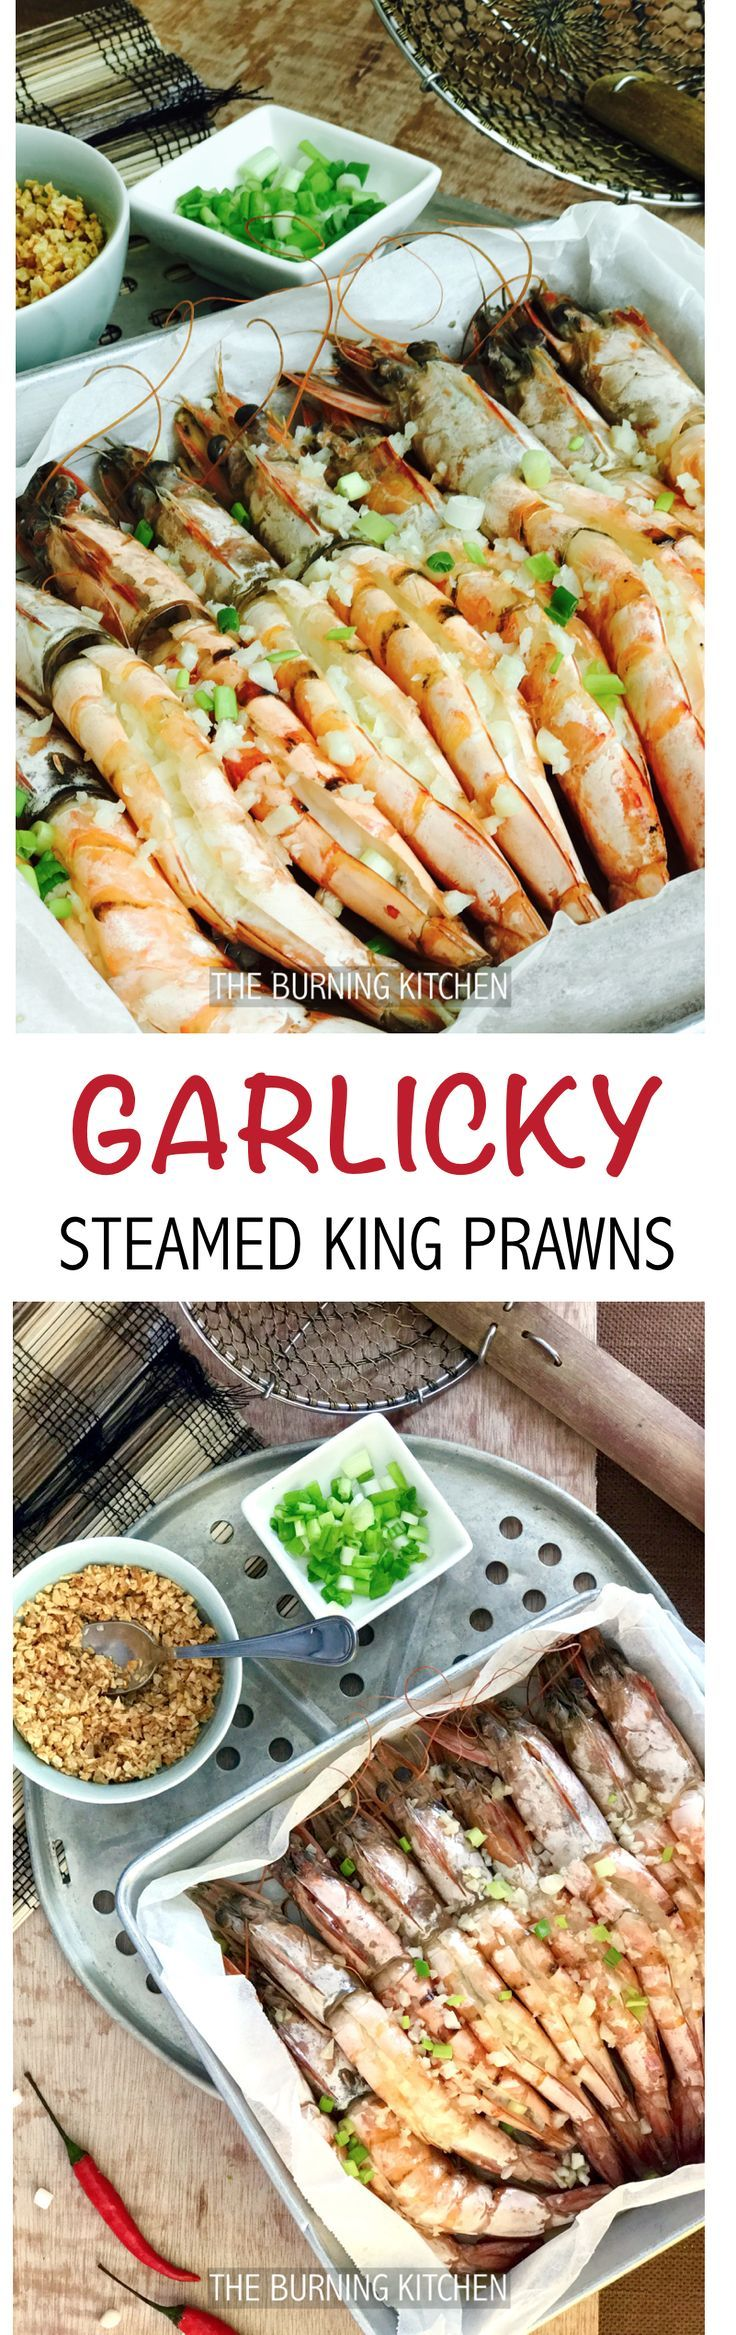 The Burning Kitchen | Garlicky Butter Steamed King Prawns - So garlicky, so yummy! A must-try!